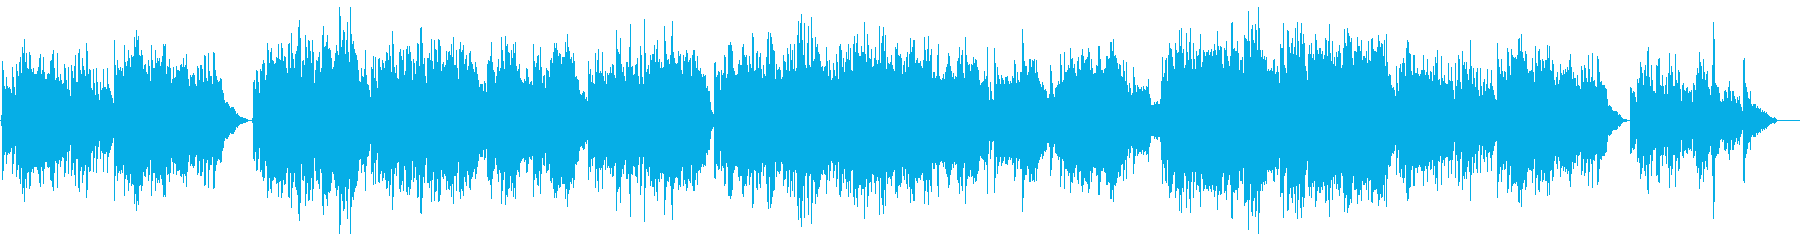 Slow and gentle relaxation sound's reproduced waveform